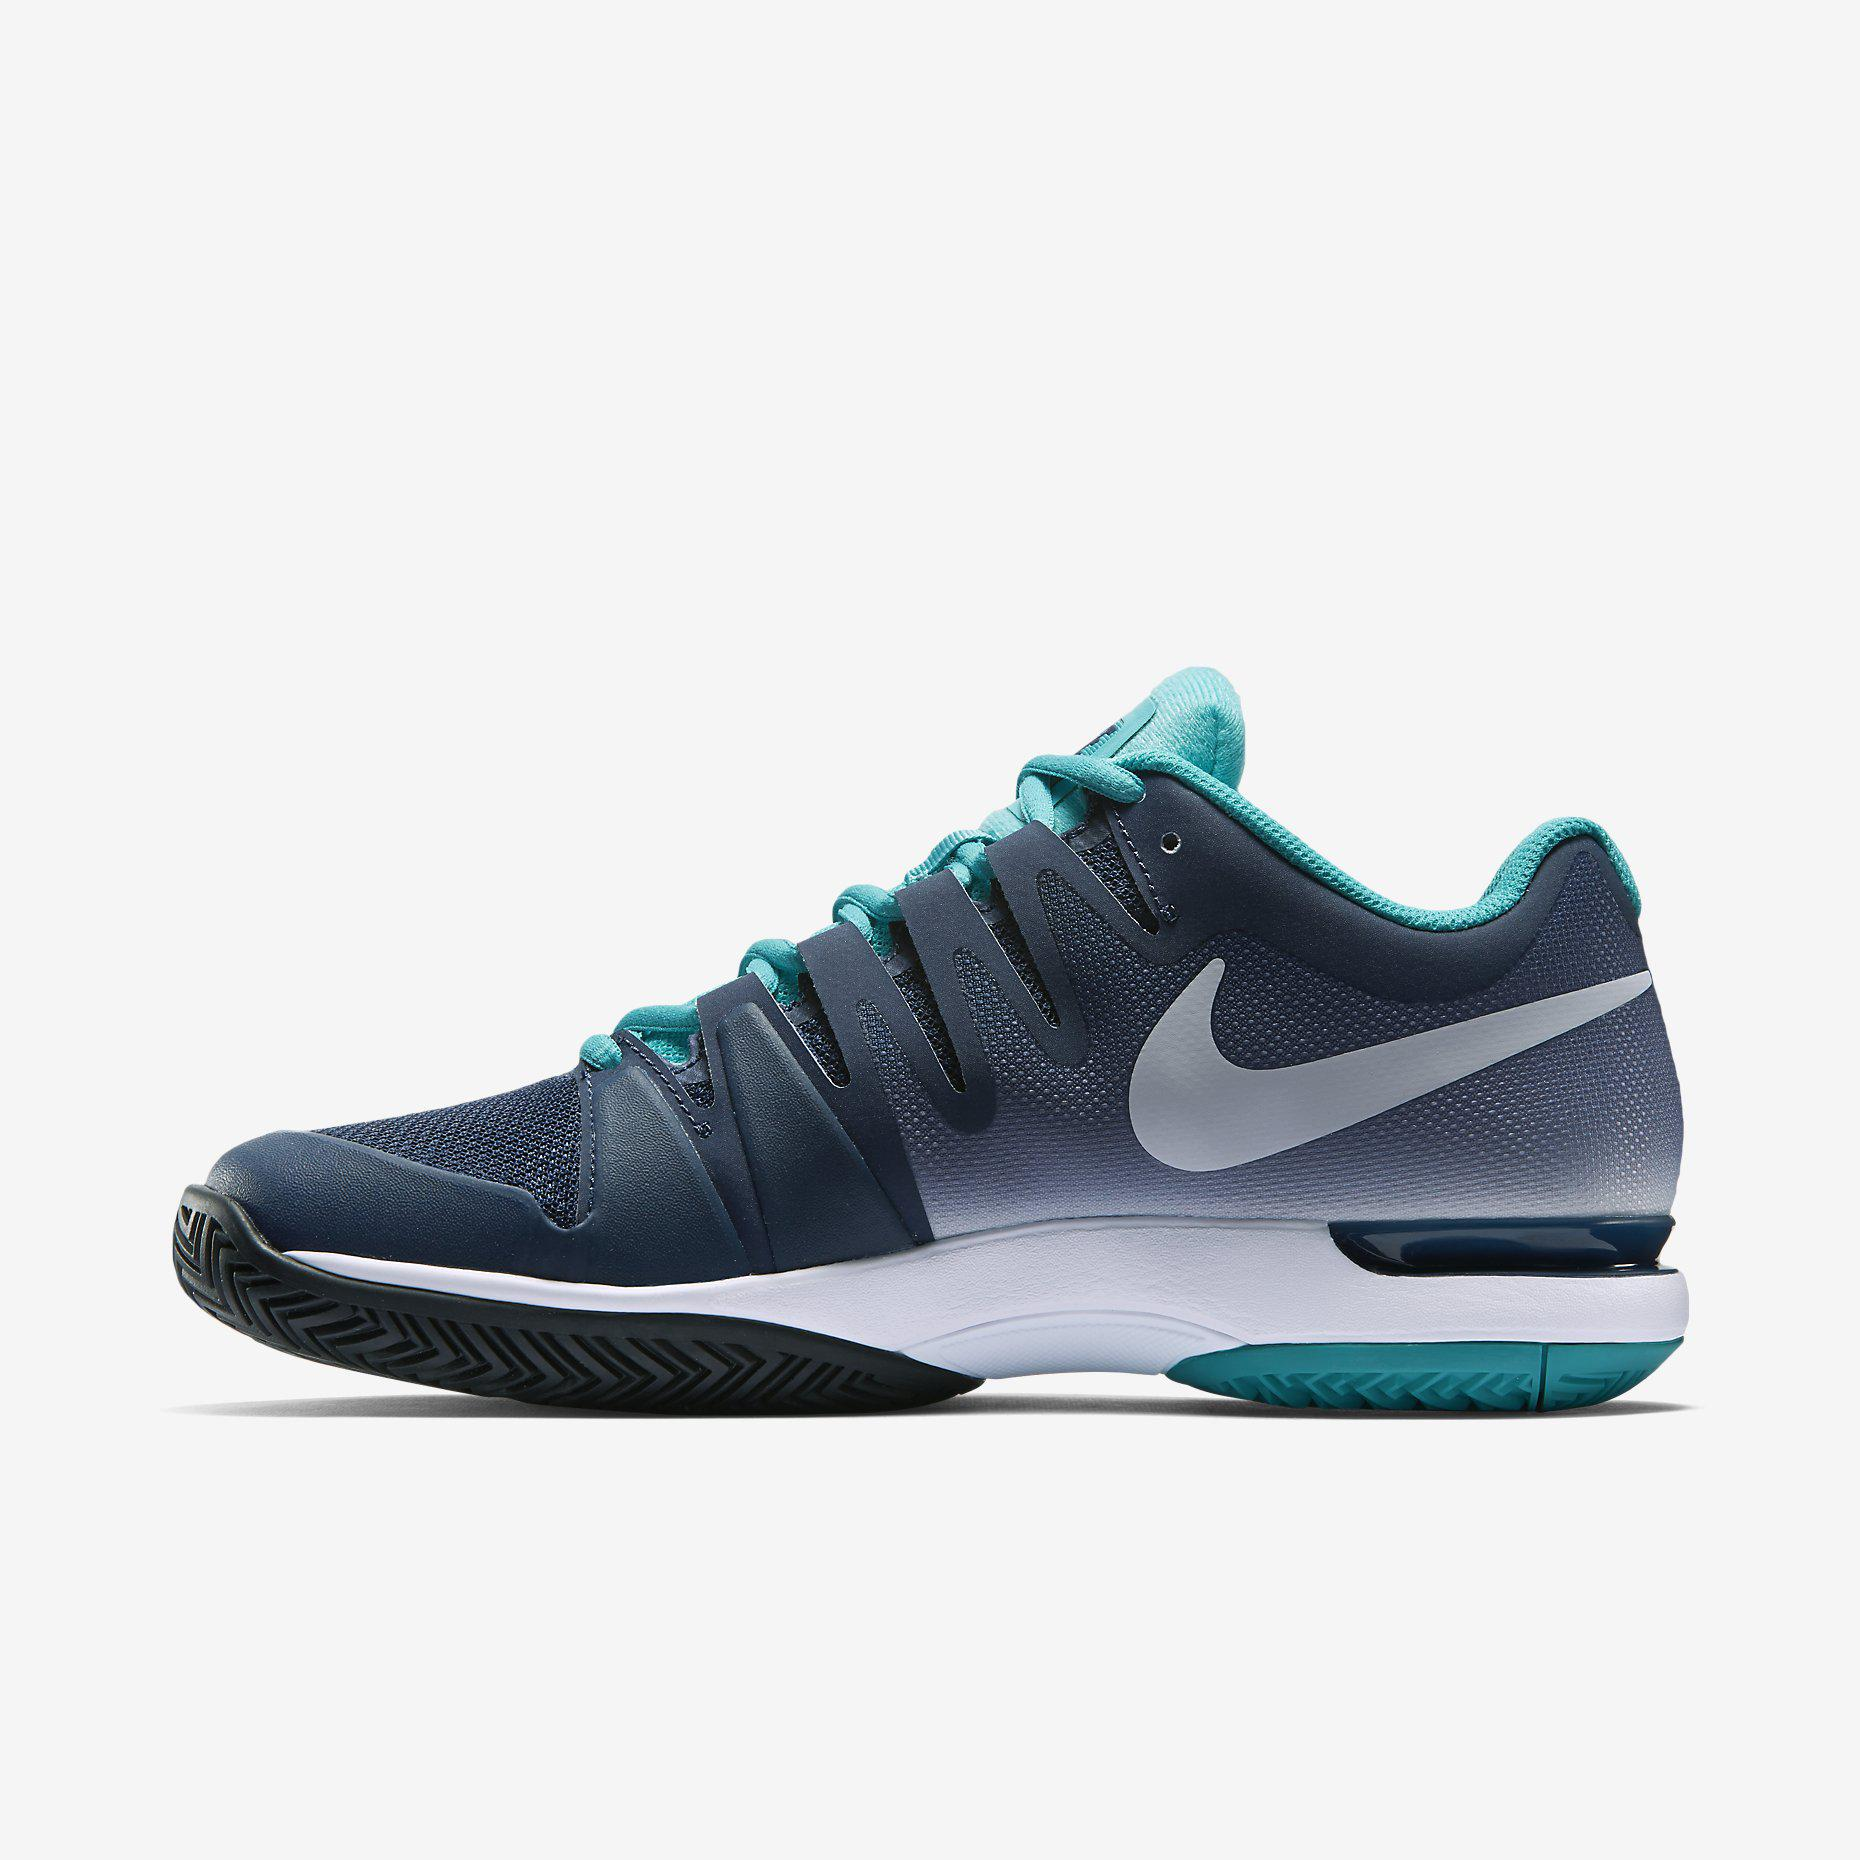 Out Of Stock. Nike Mens Zoom Vapor 9.5 Tour Tennis Shoes - Midnight Navy ...